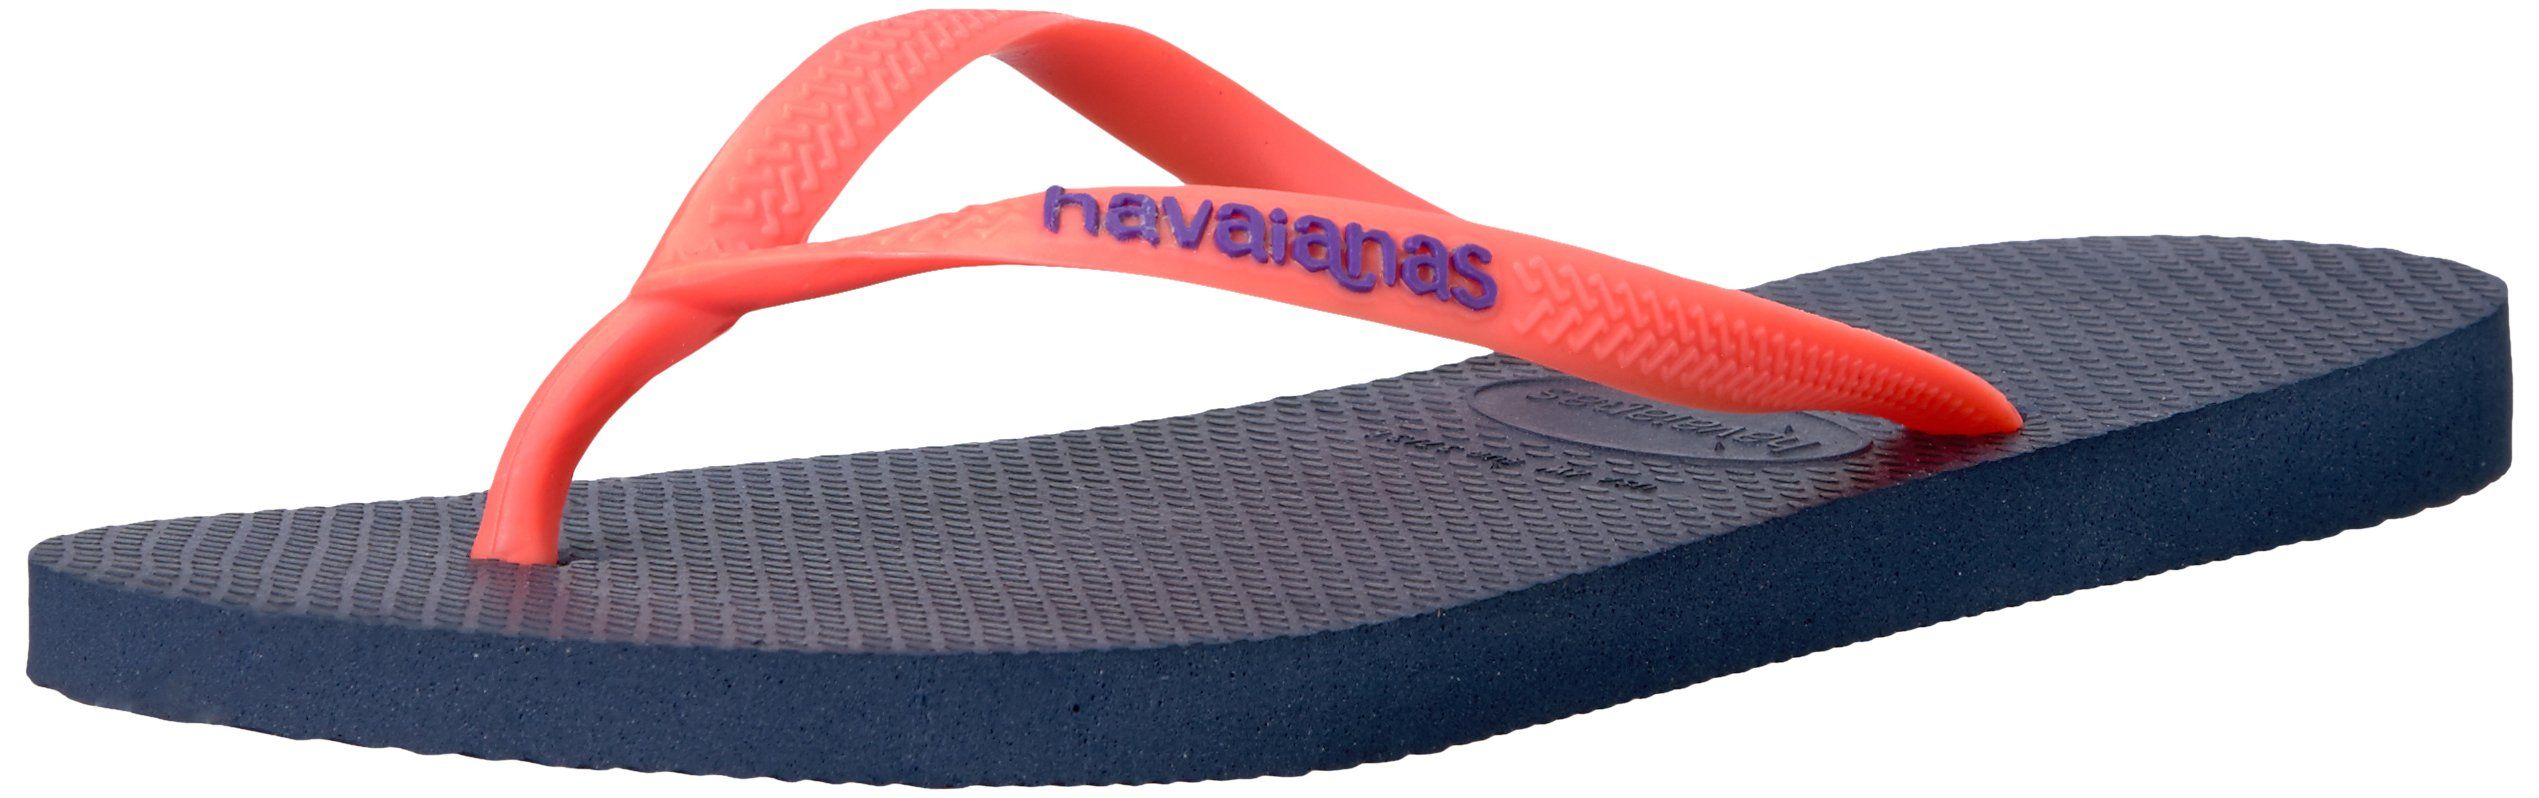 Havaianas Women's Slim Animals Flip Flop, Navy Blue, 37/38 BR (7-8 M US)